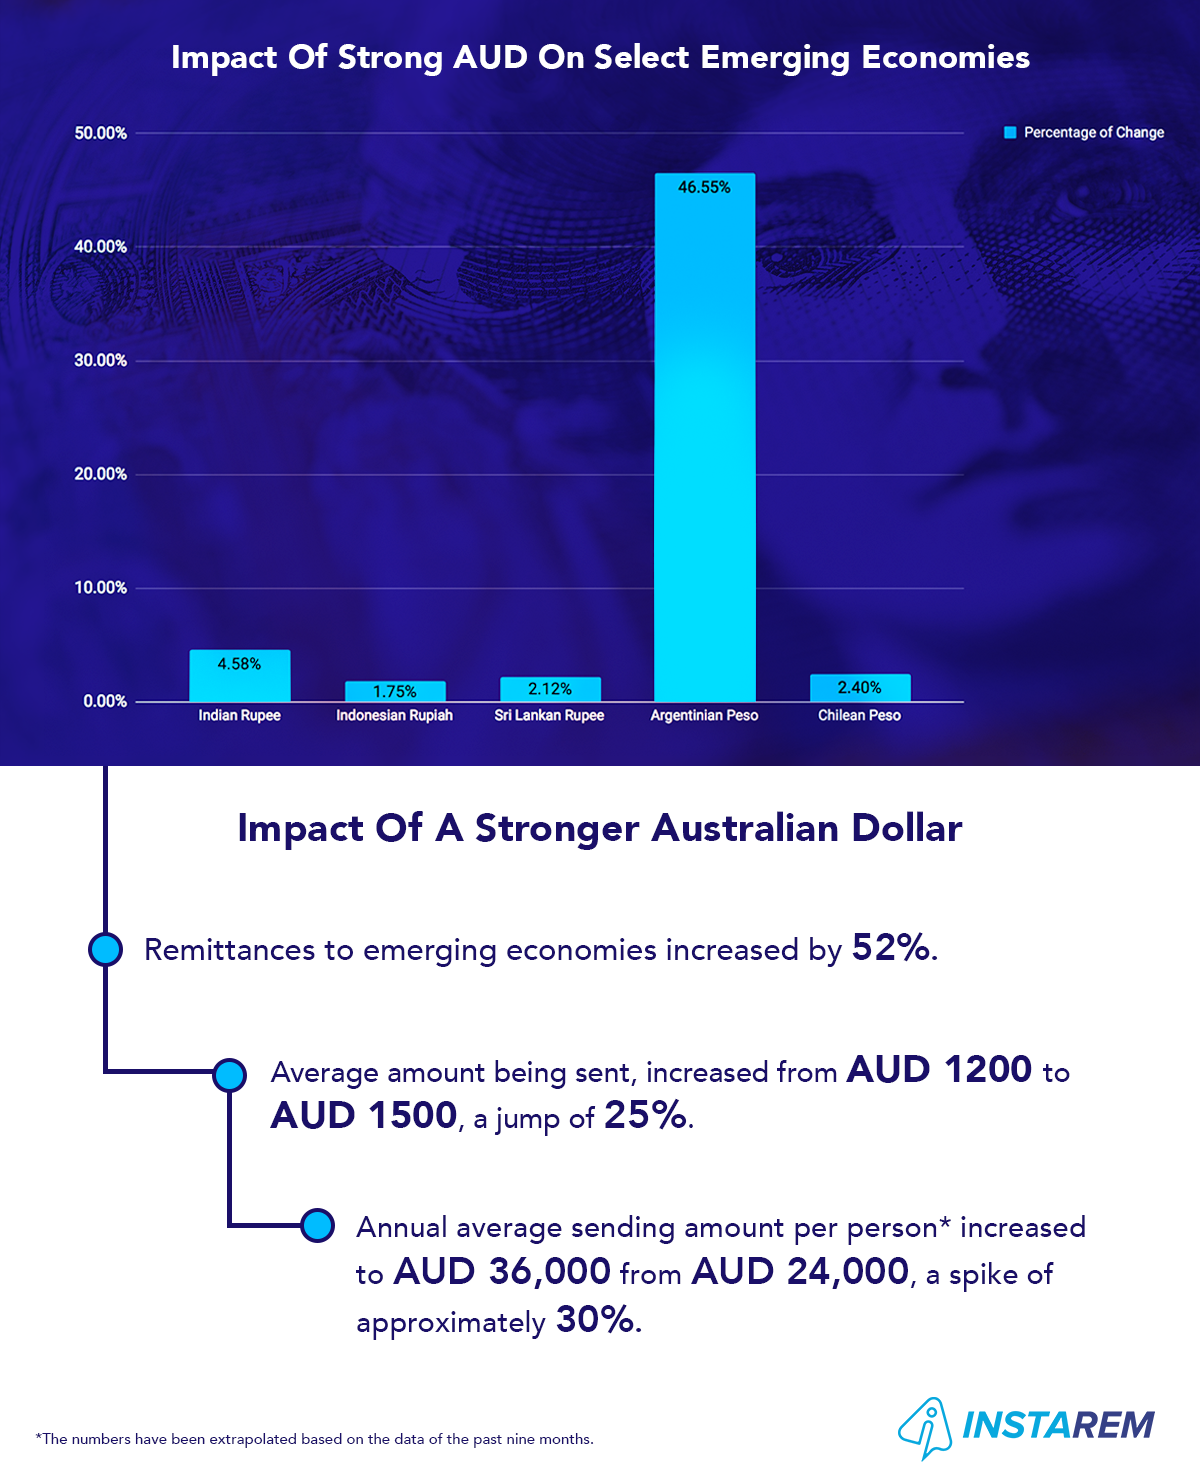 How The Rallying Dollar Impacts Remittances From Australia To Emerging Countries